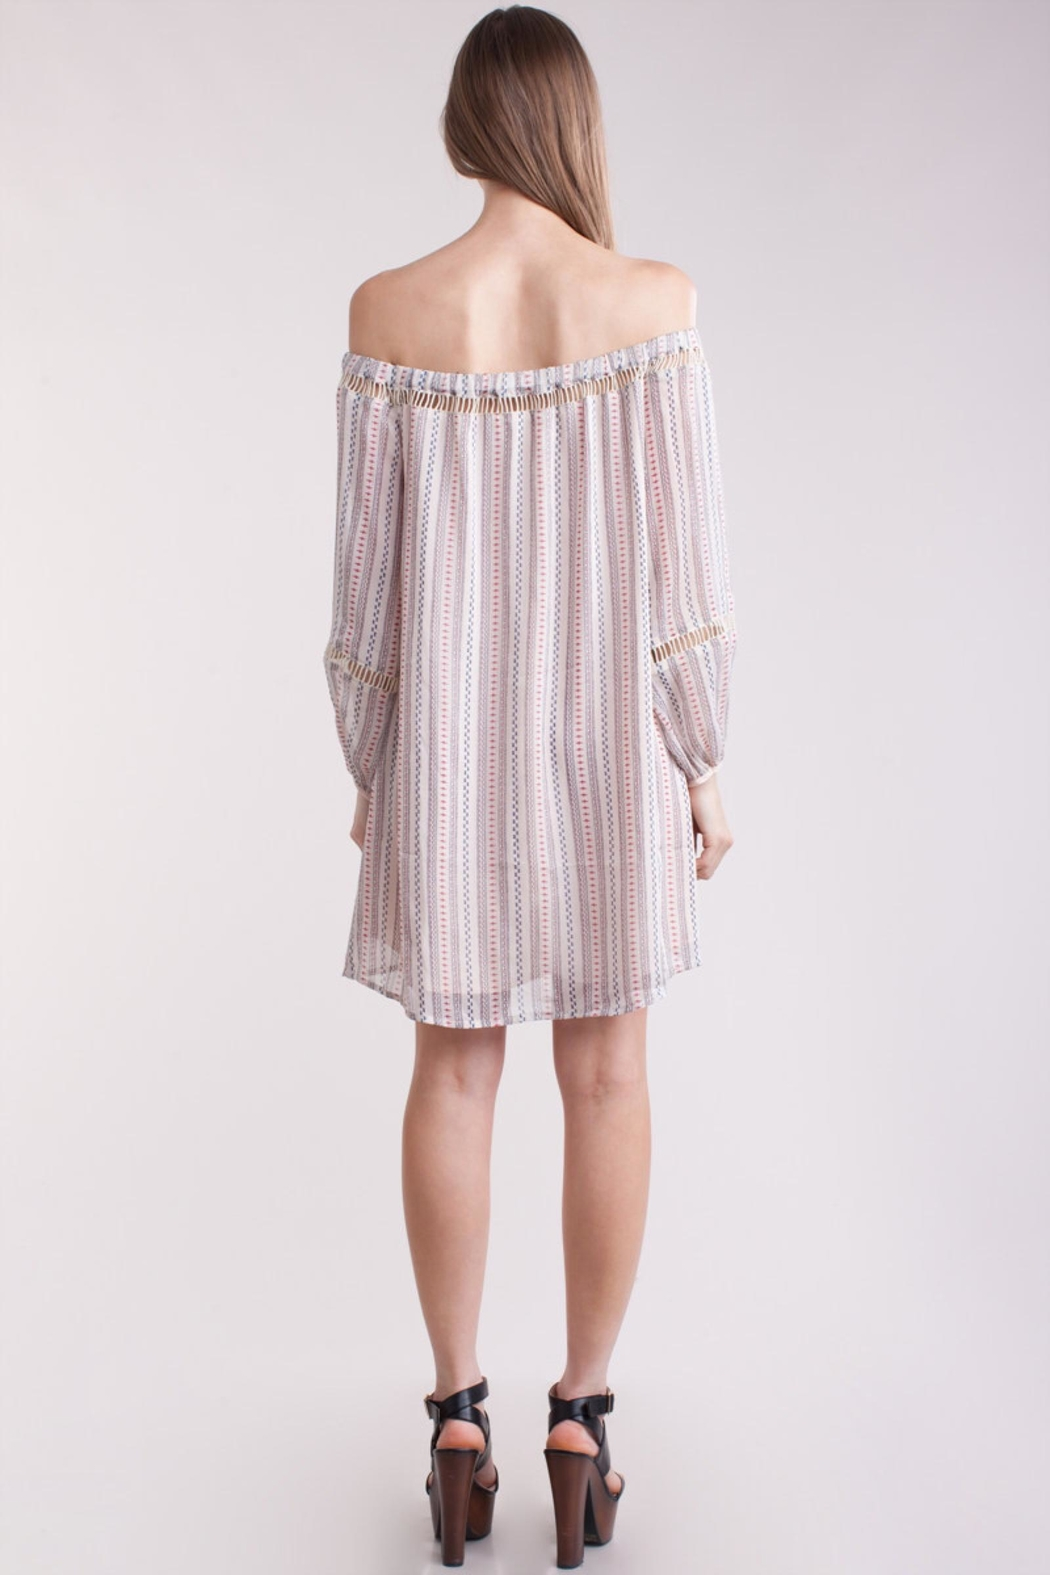 People Outfitter Striped  Dress - Front Full Image